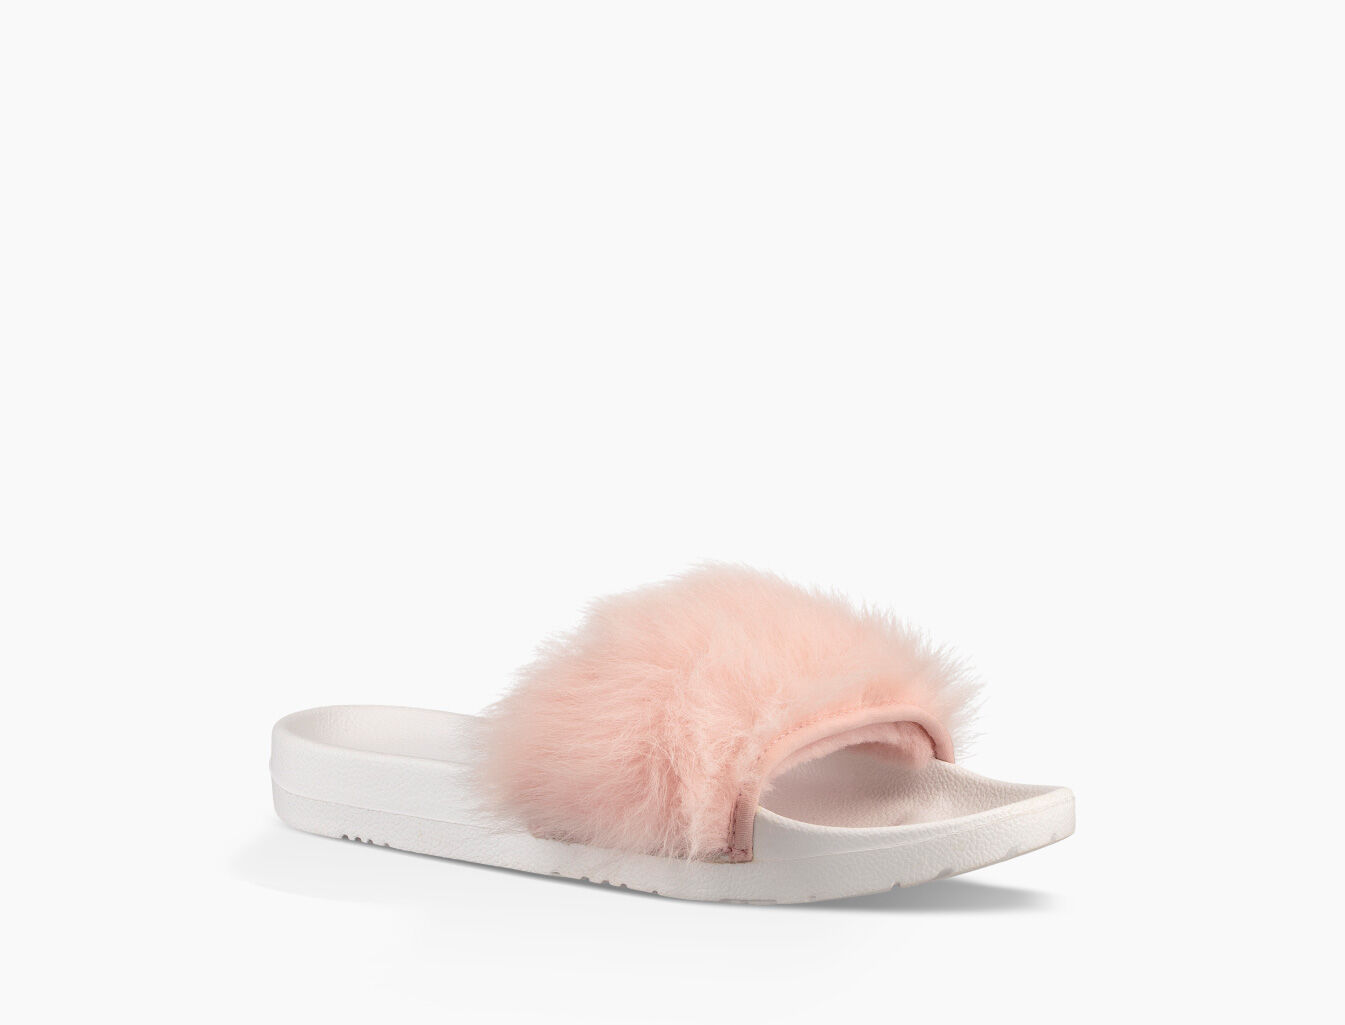 ugg sandals with fur